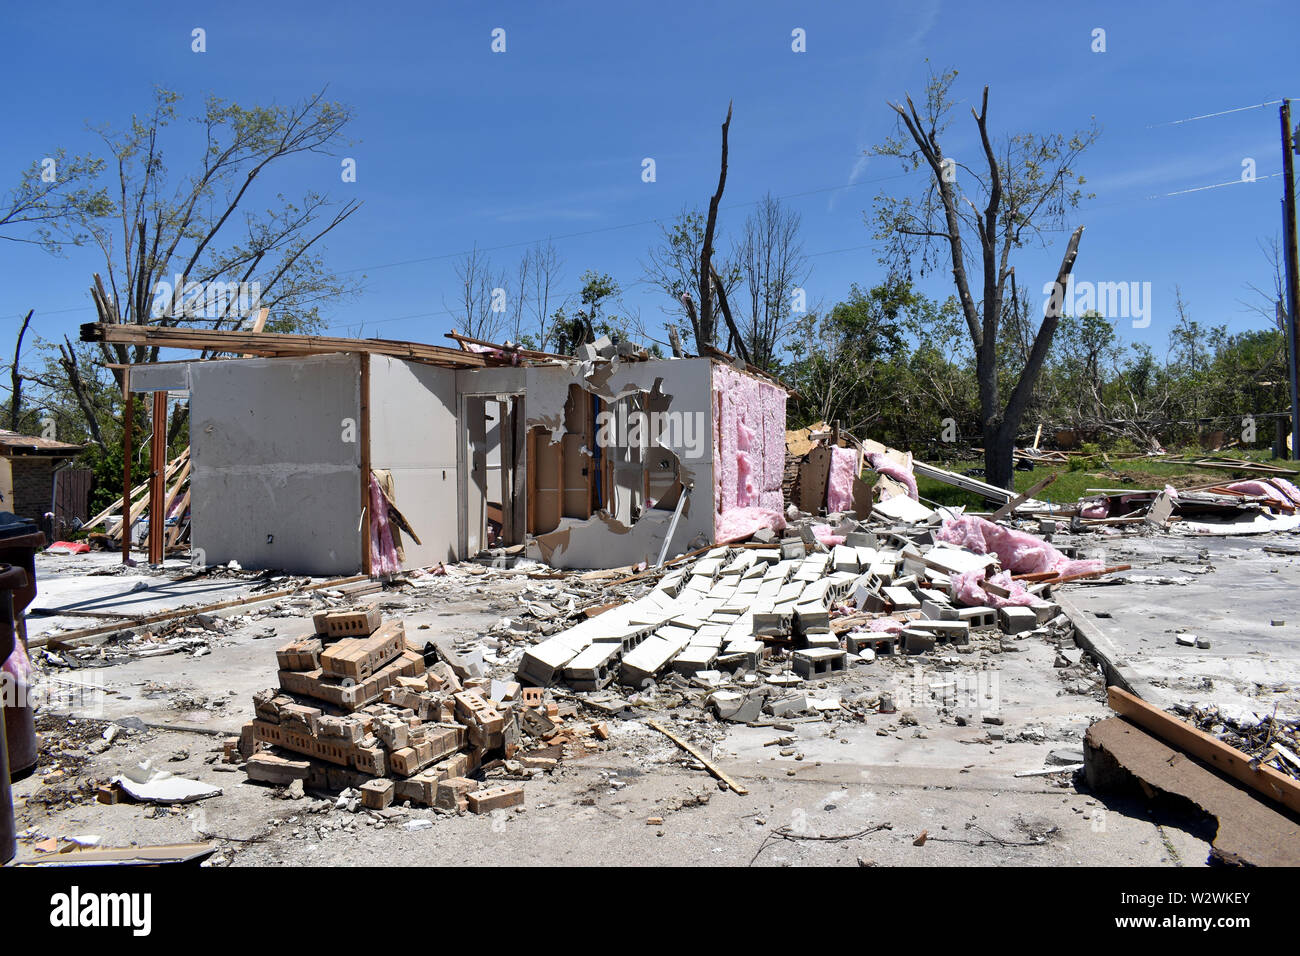 Tornado damage that occurred on the 27th of May 2019 in the Dayton, Ohio vicinity - Stock Image